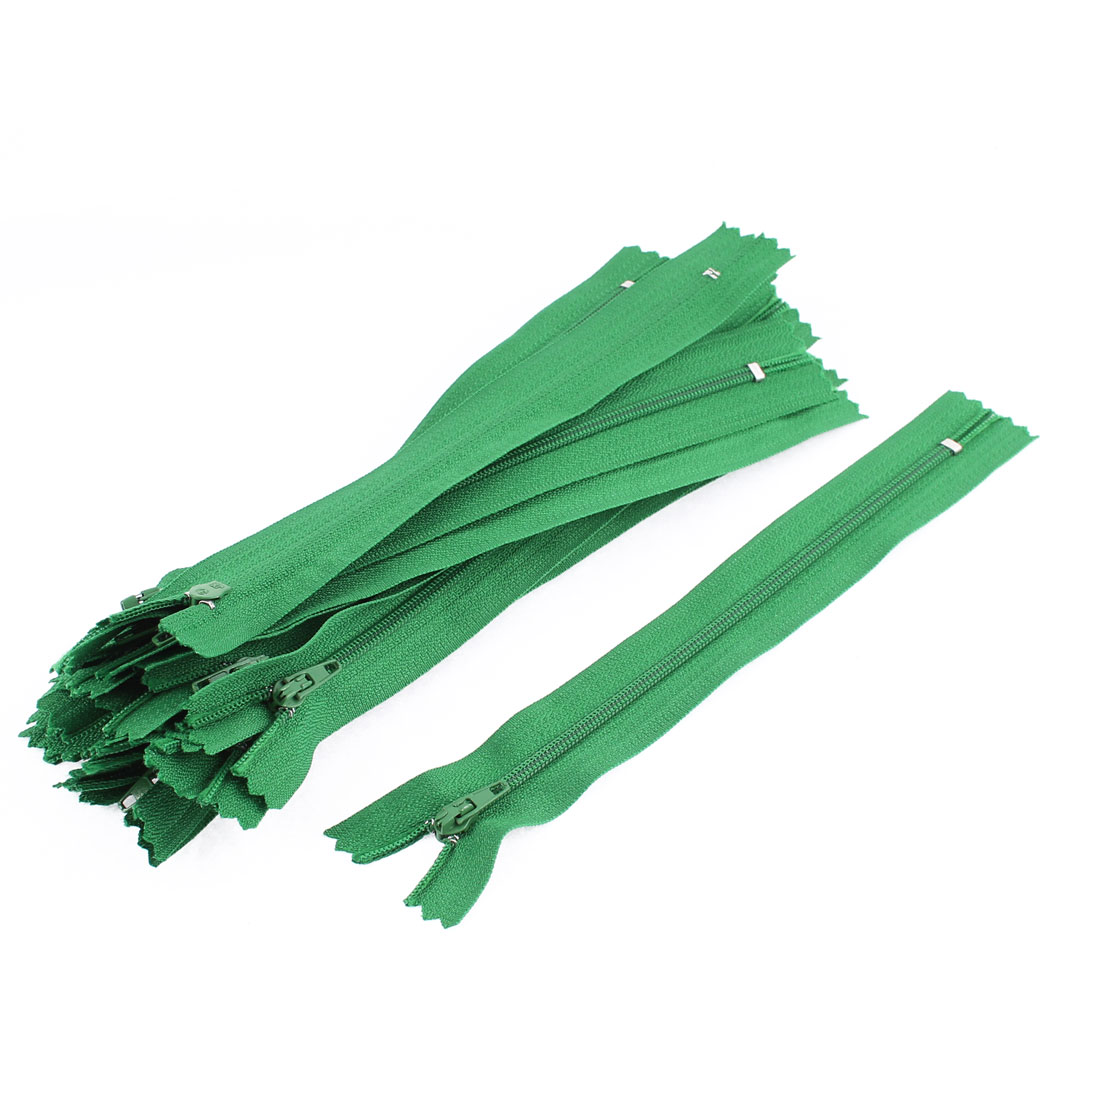 Dress Pants Closed End Nylon Zippers Tailor Sewing Craft Tool Green 18cm 20 Pcs